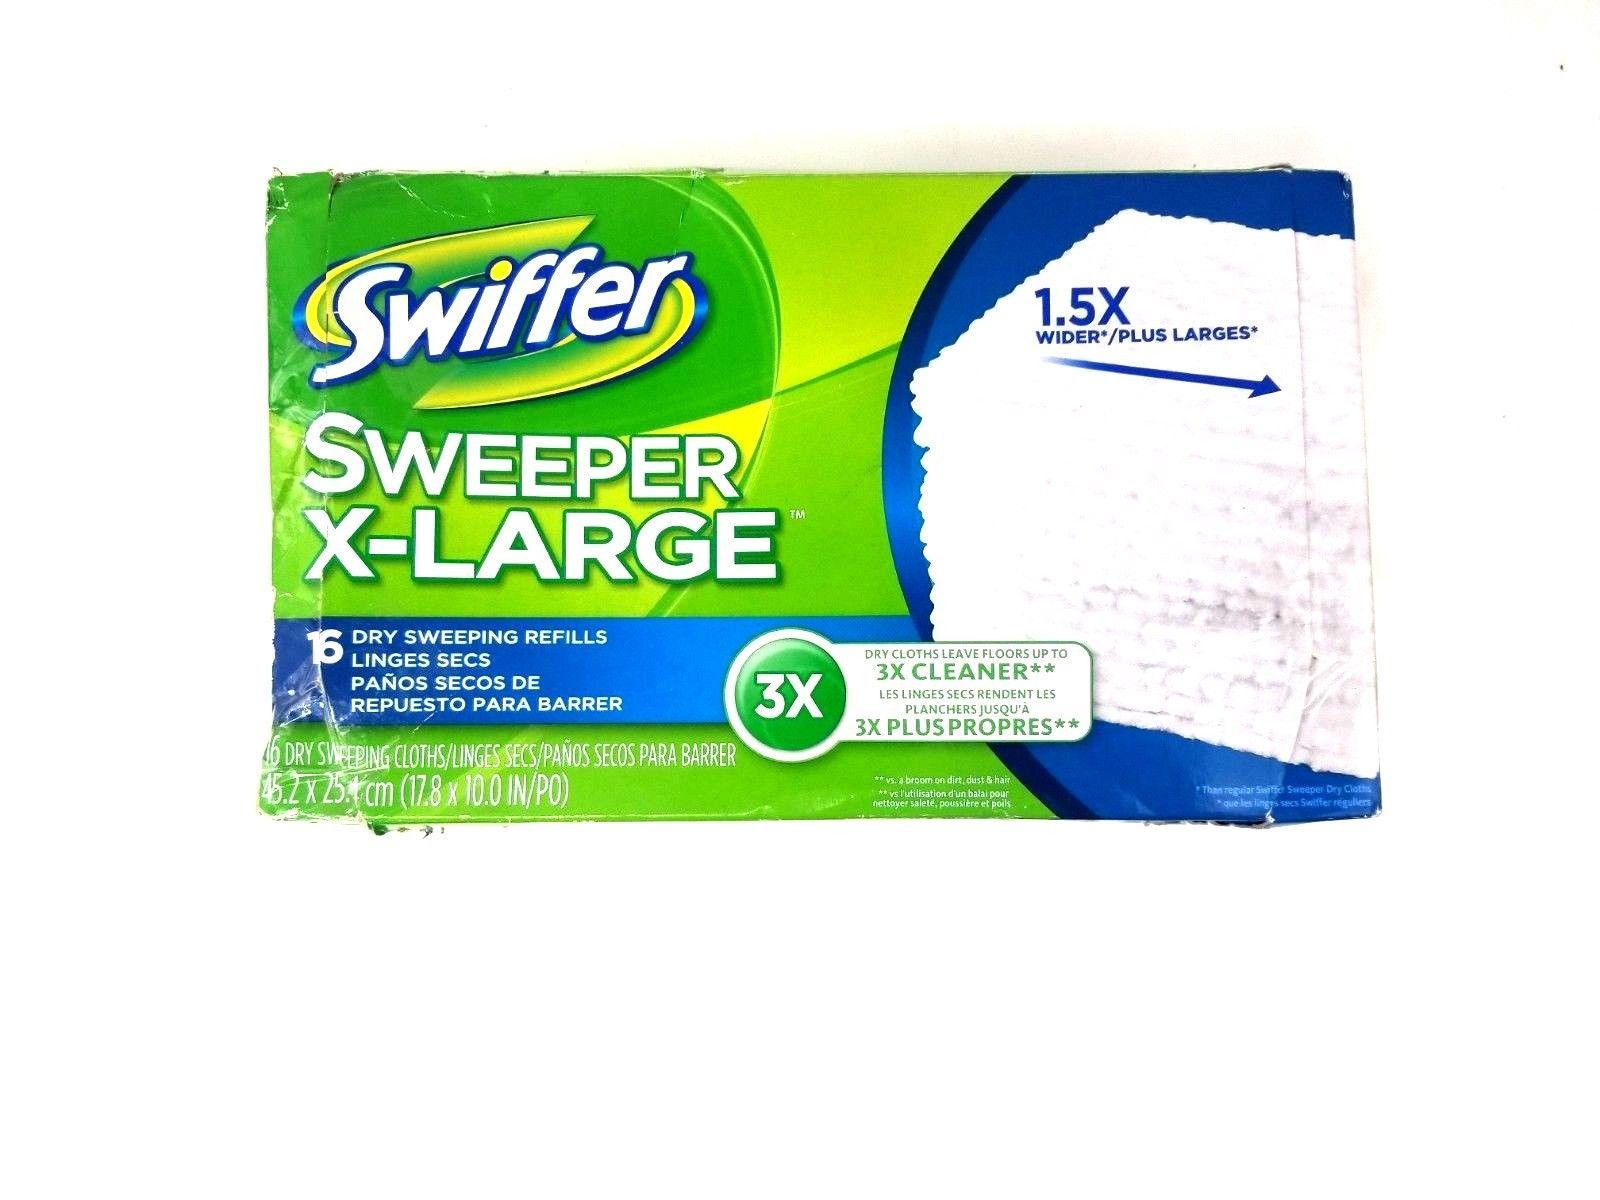 """Swiffer Sweeper X-Large 16 Dry Sweeping Refills Dry Cloths 17.8 x 10"""" 1.5x Wider"""